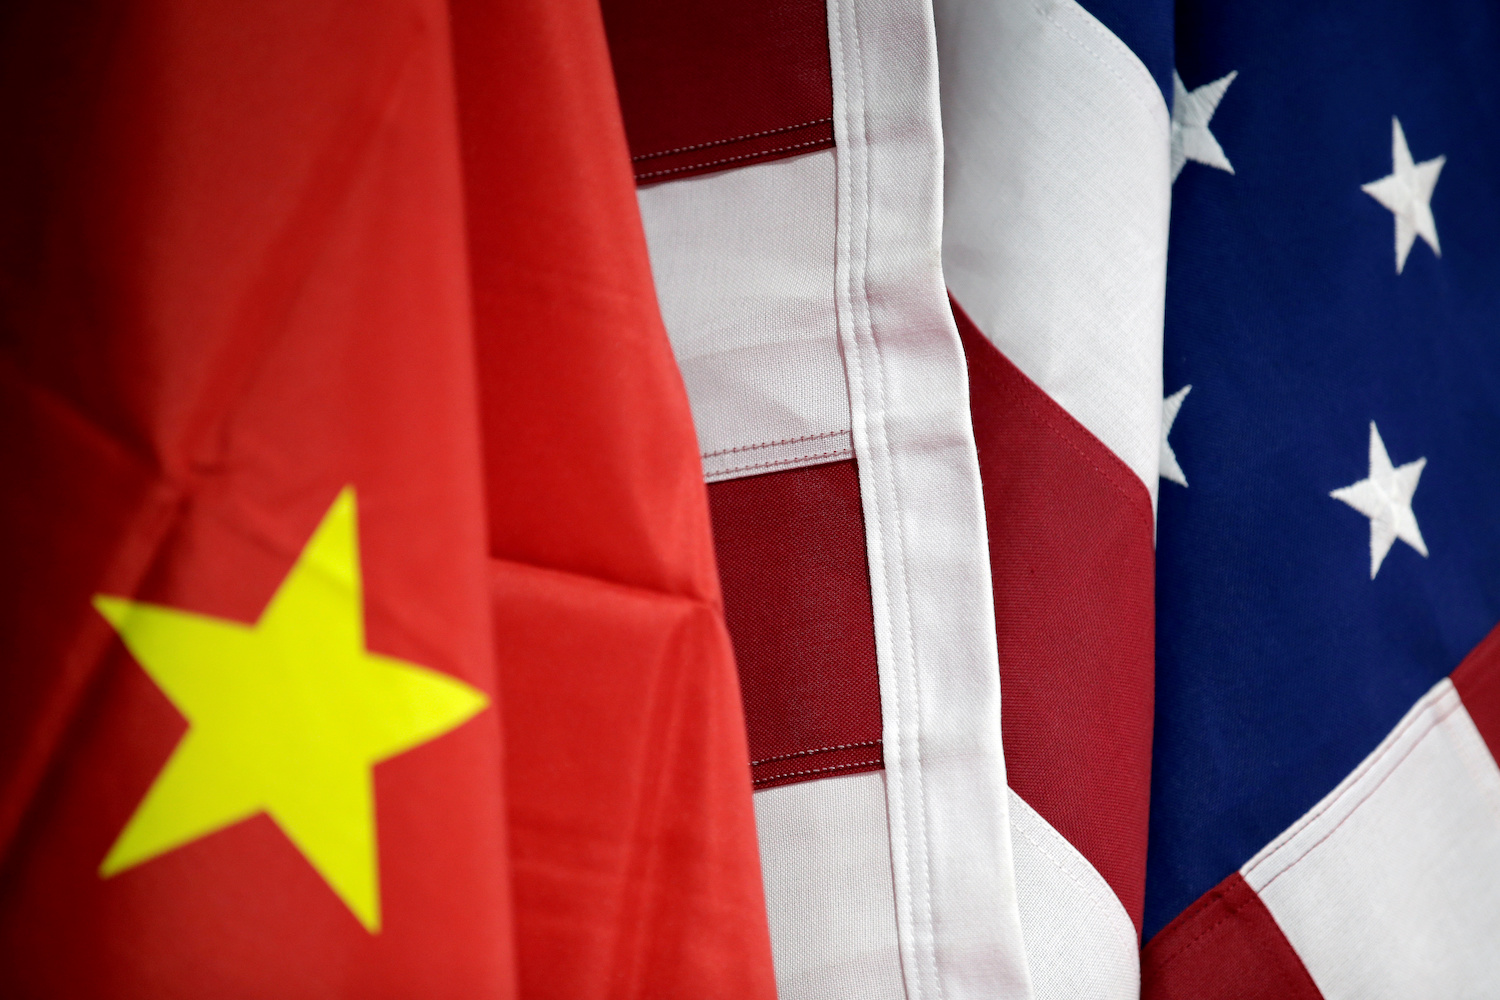 US officials divided over impact of Chinese investment ban